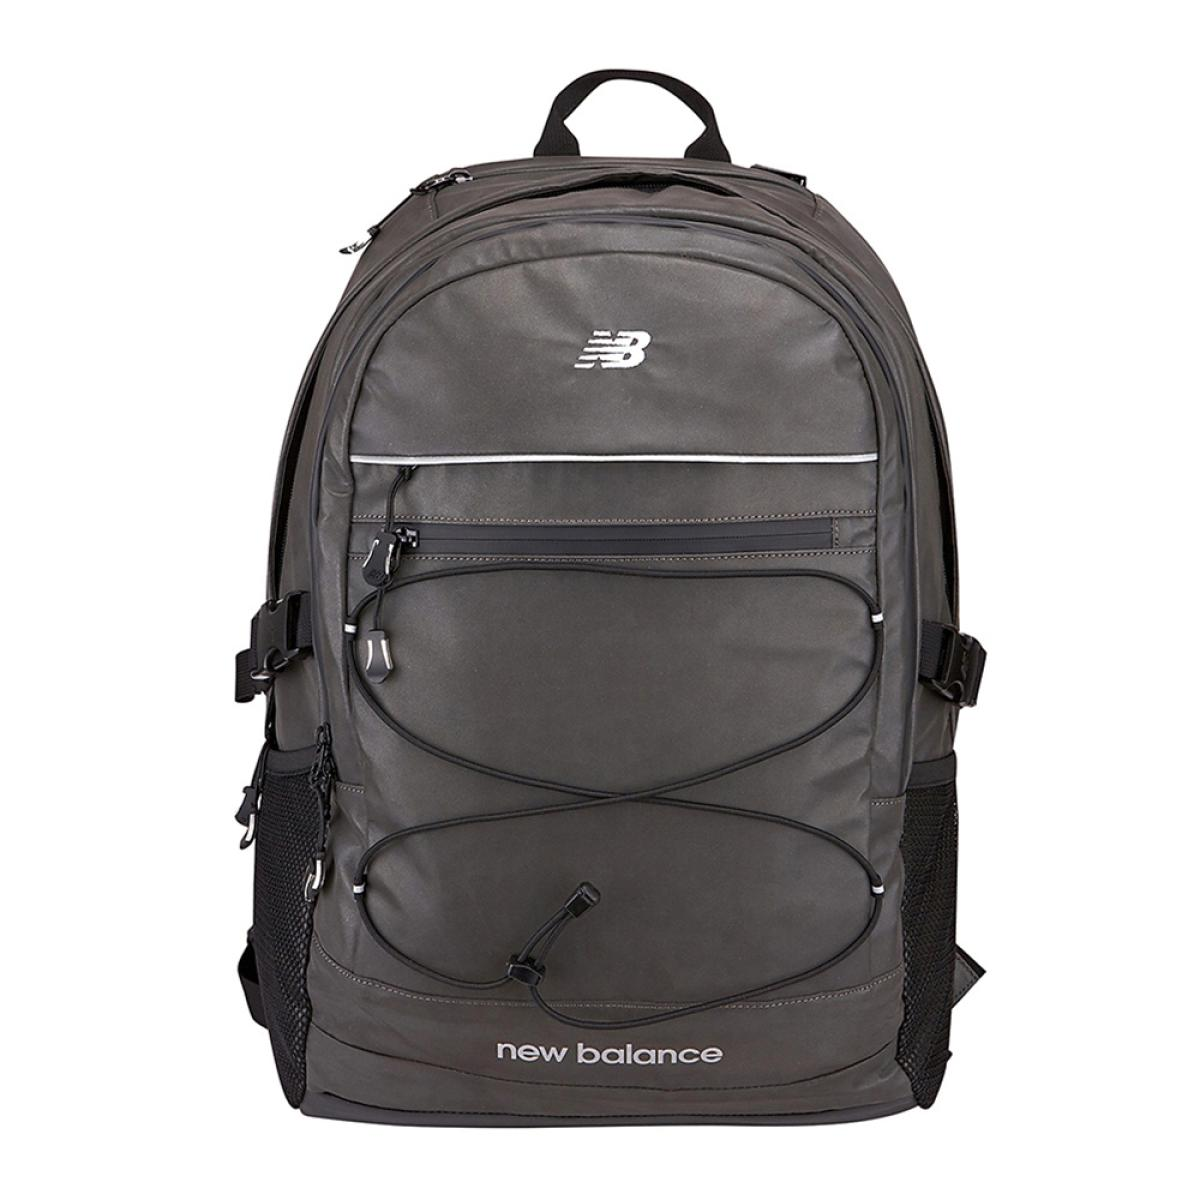 4LV_TECH BACKPACK(3M LIMITED)